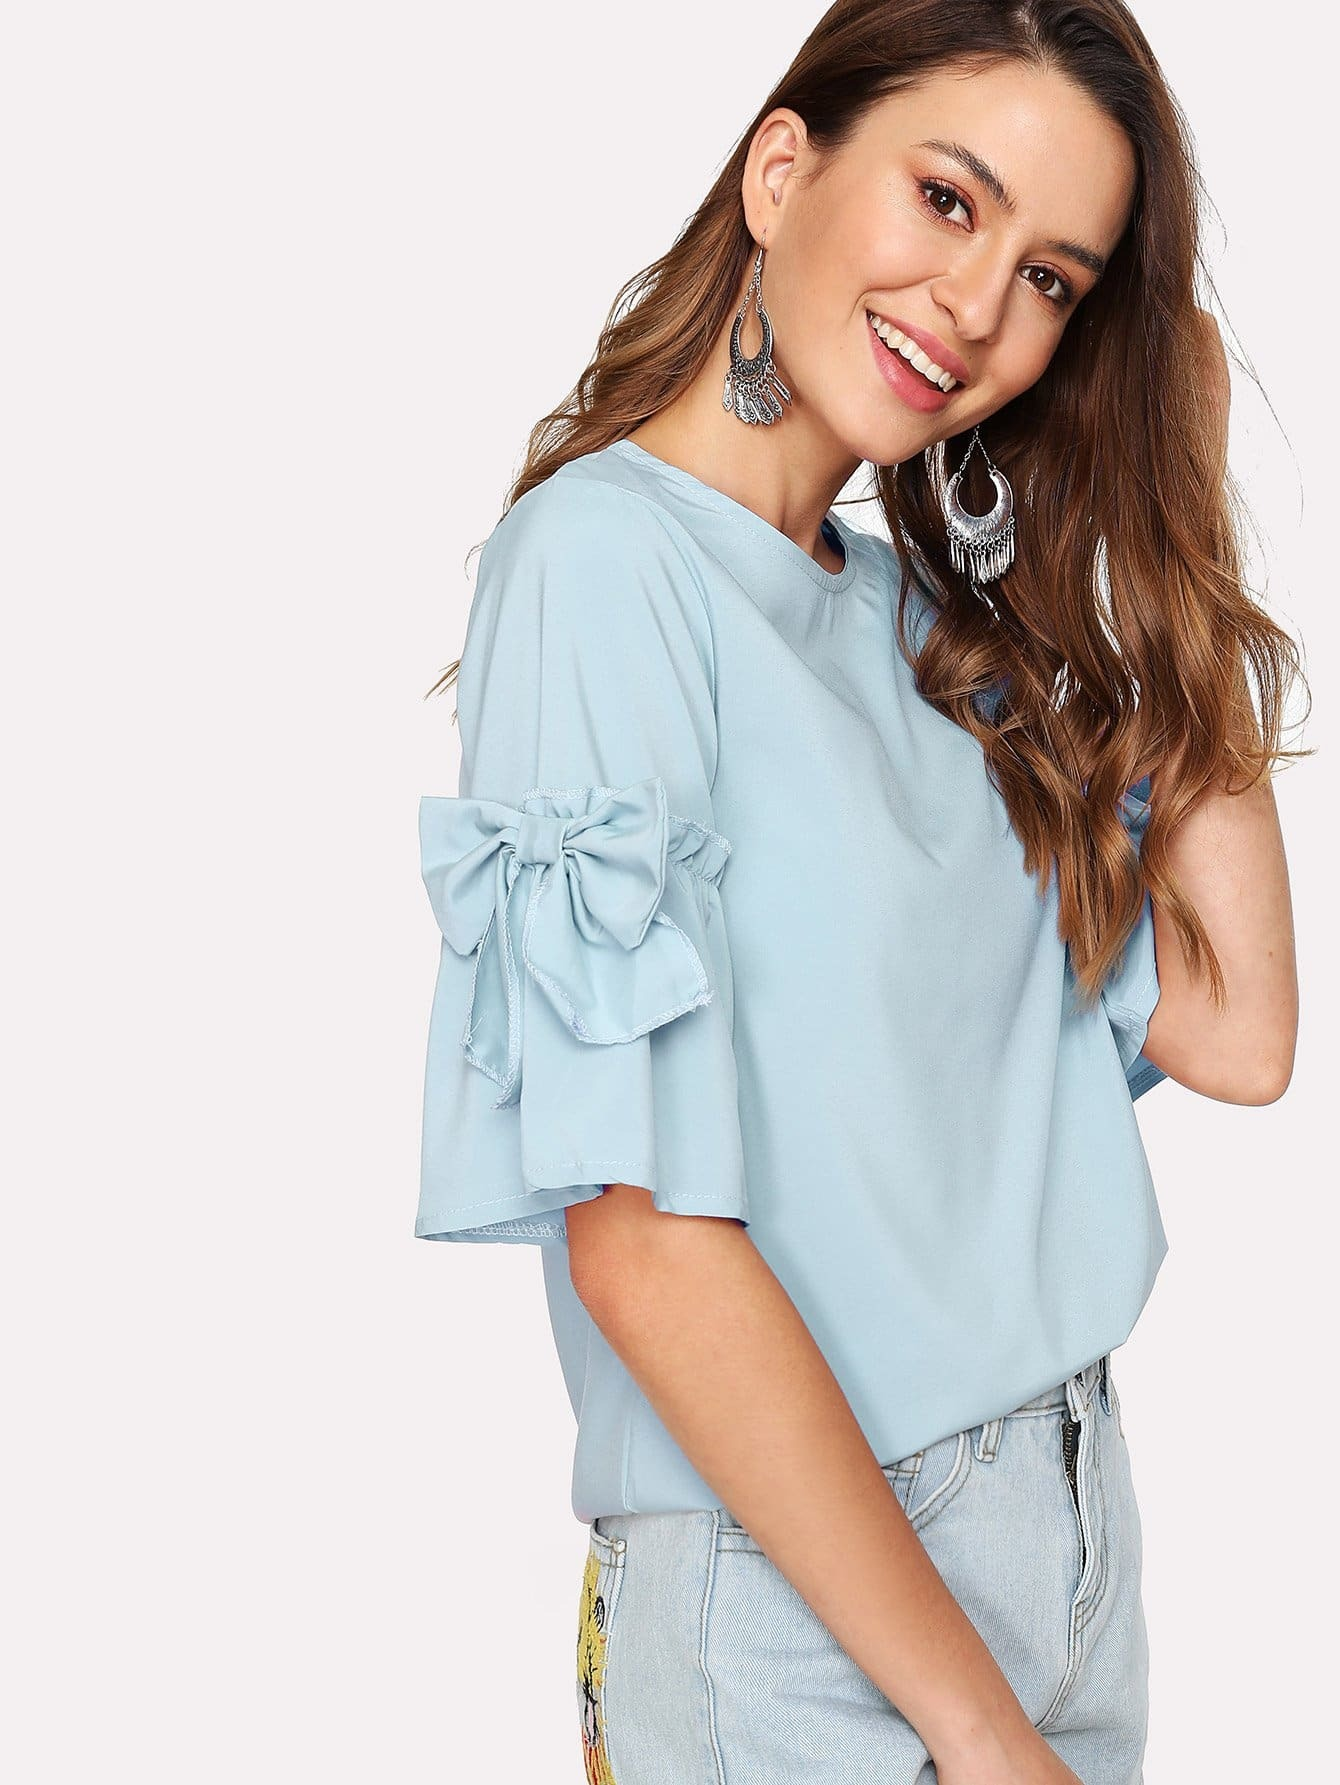 Bow Detail Flounce Sleeve Keyhole Back Blouse bow detail fluted sleeve laser cut scalloped blouse